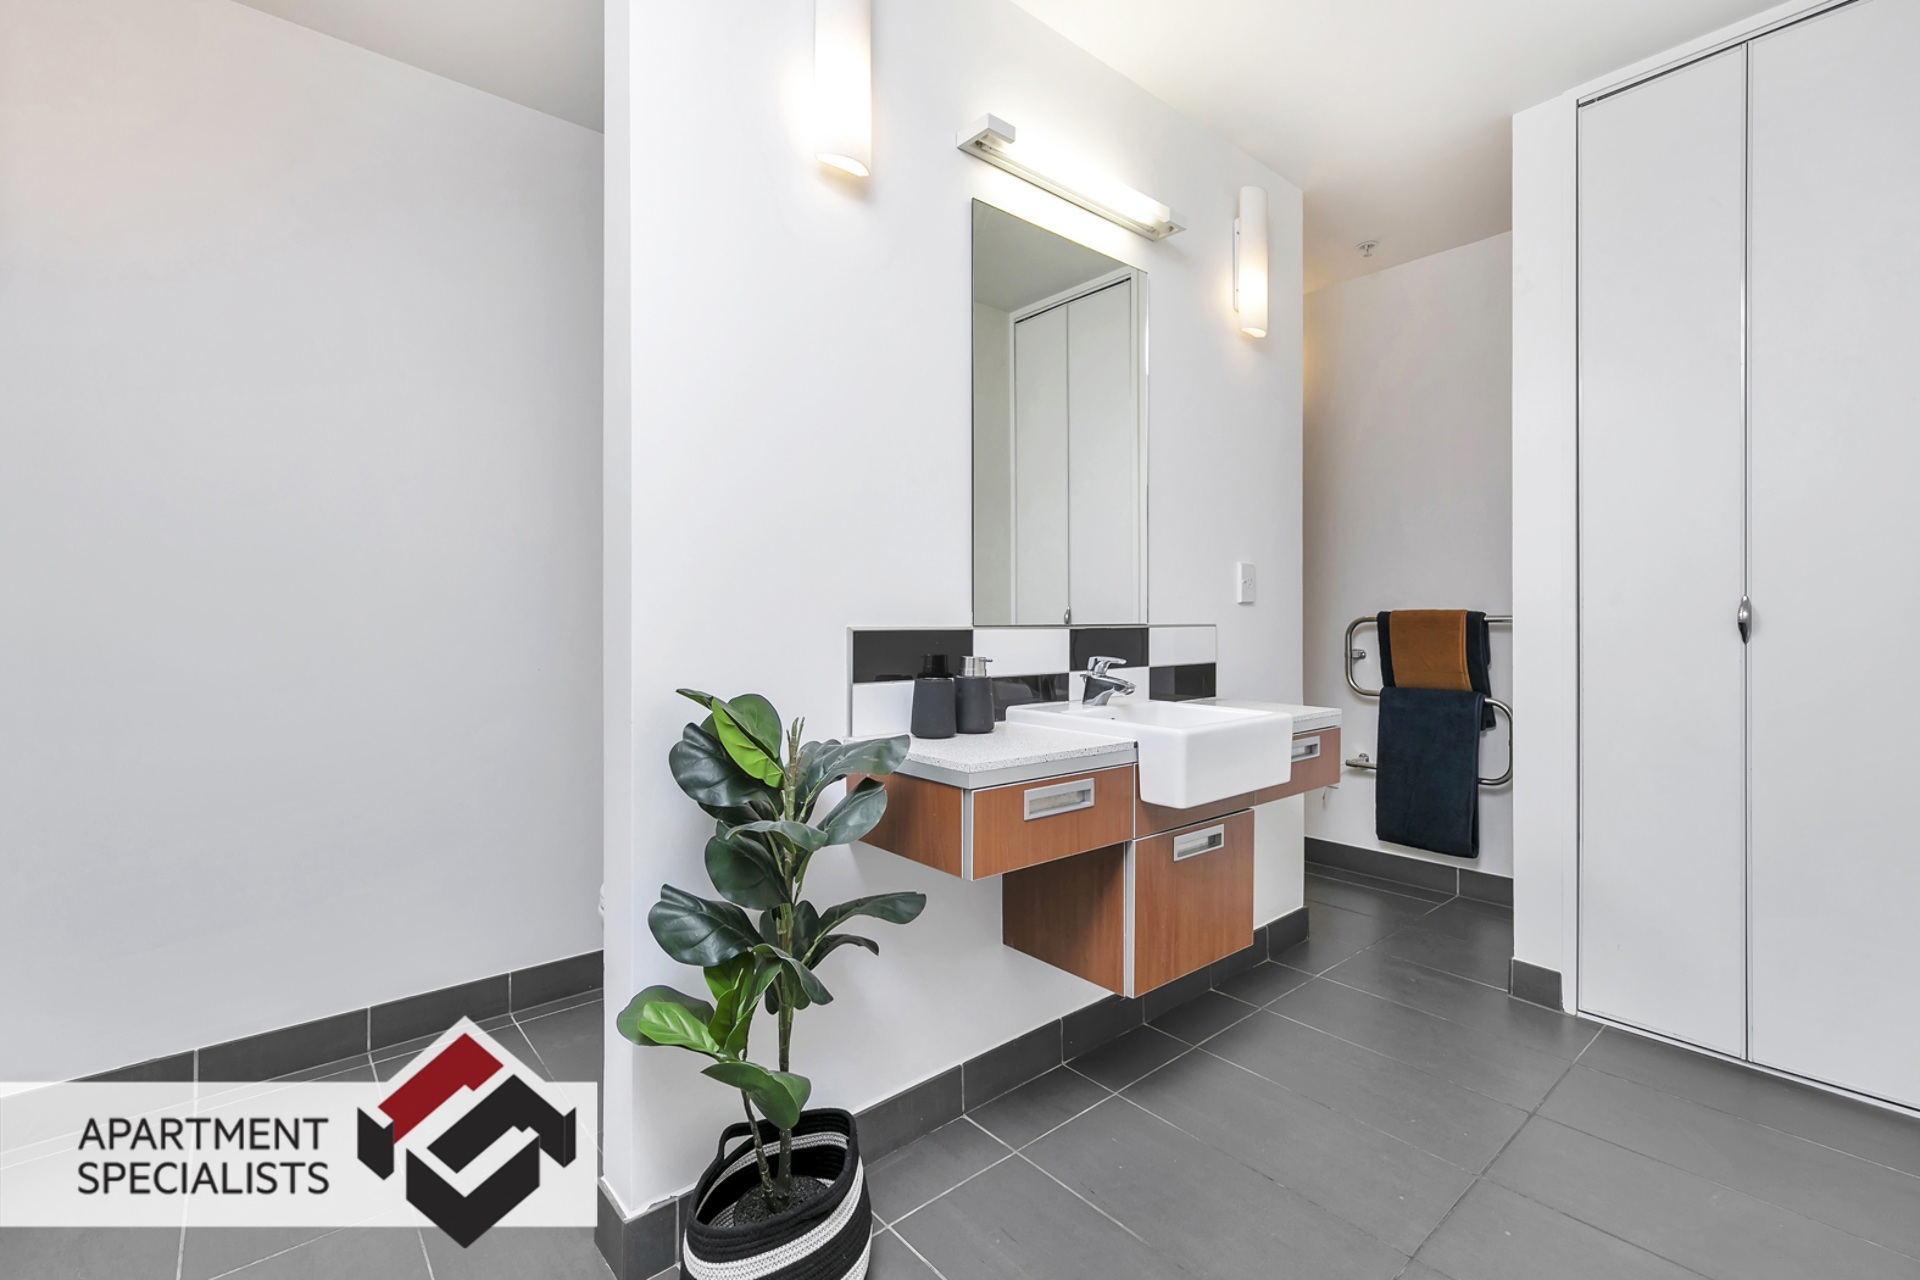 8 | 6 Victoria Street, City Centre | Apartment Specialists